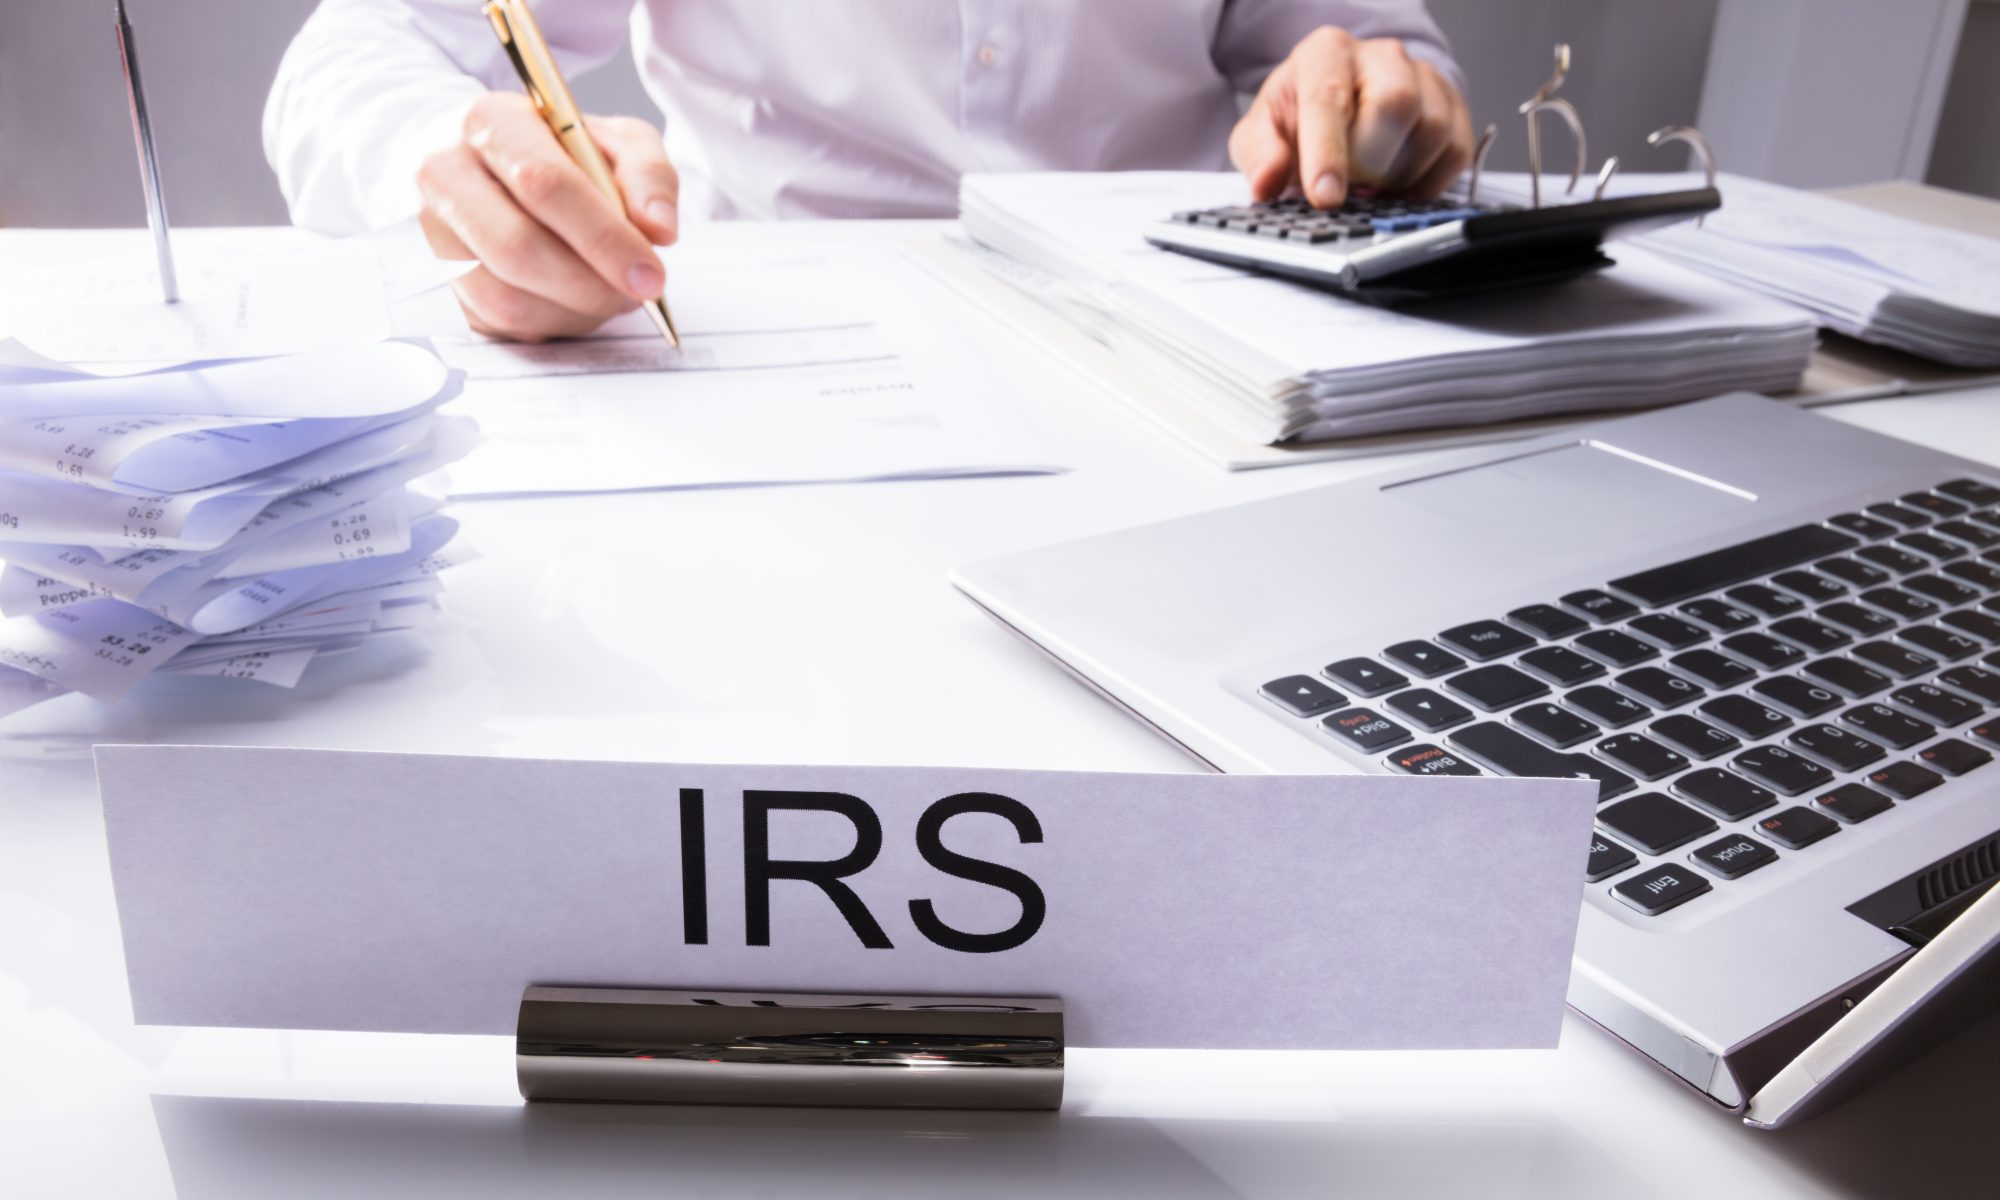 CORPORATIONS HAVE SHORT PERIOD TO APPLY FOR IRS CAP PROGRAM